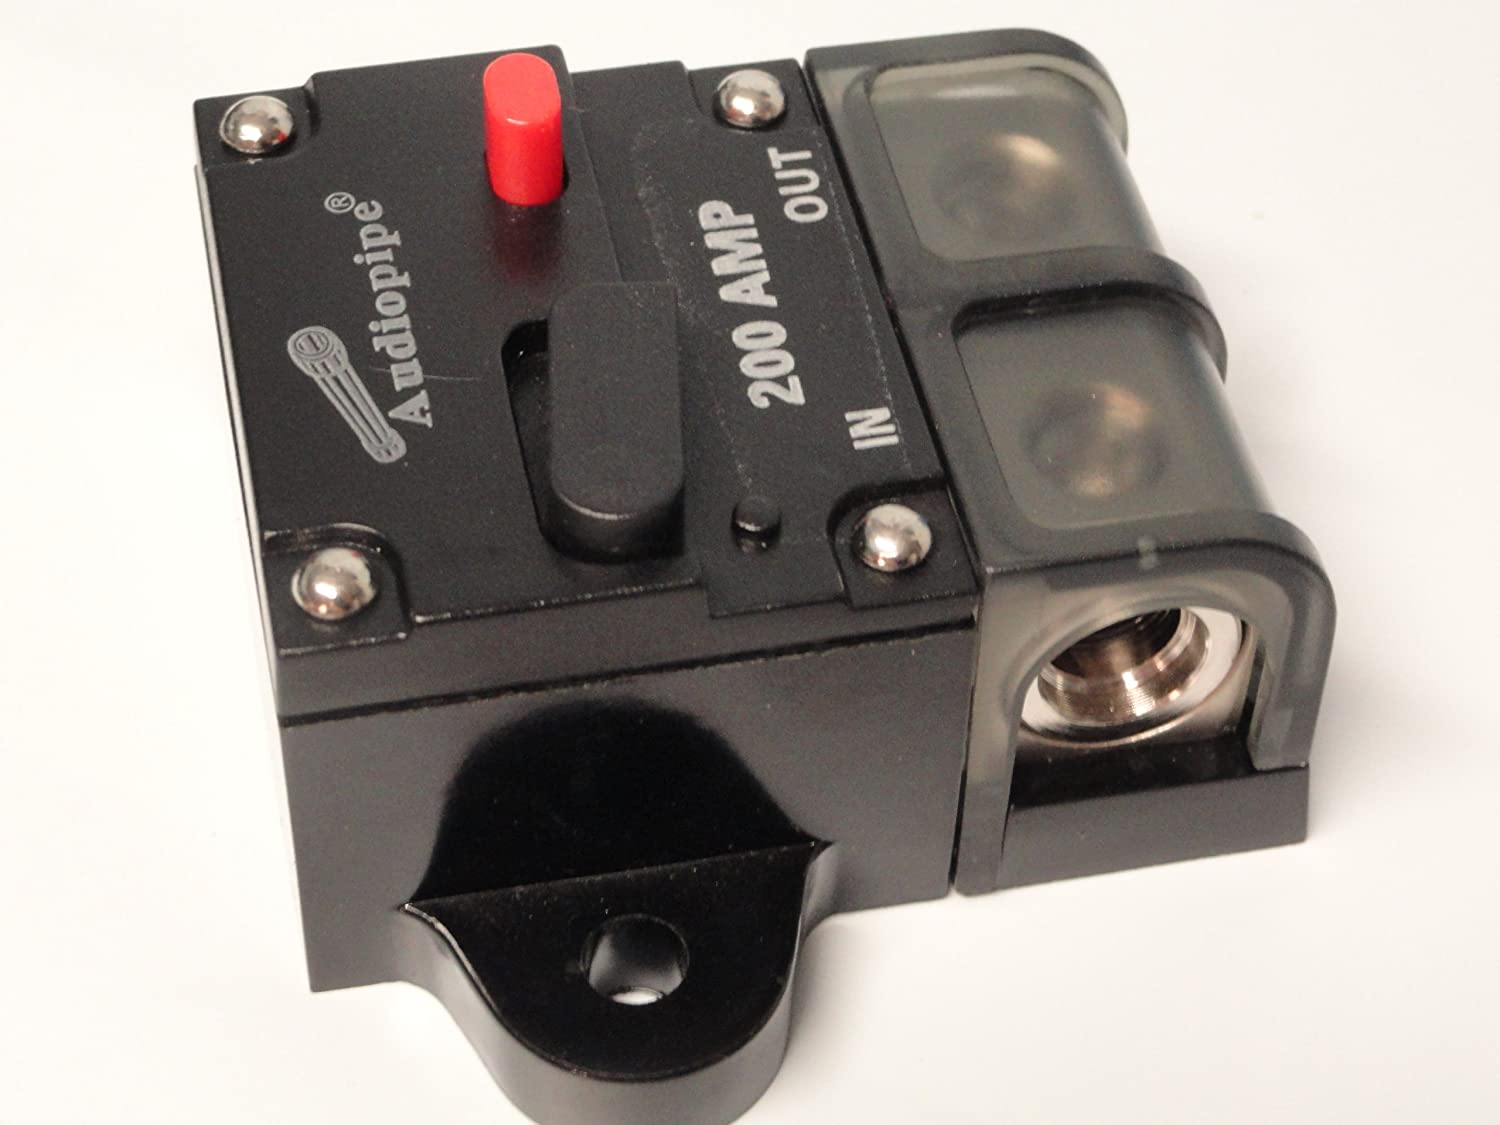 4 Or 8 Gauge Awg 12v 200a 200 Amp A Manual Reset Circuit Breaker Types Video Different Of Breakers Ehow 12 Volt Home Audio Theater